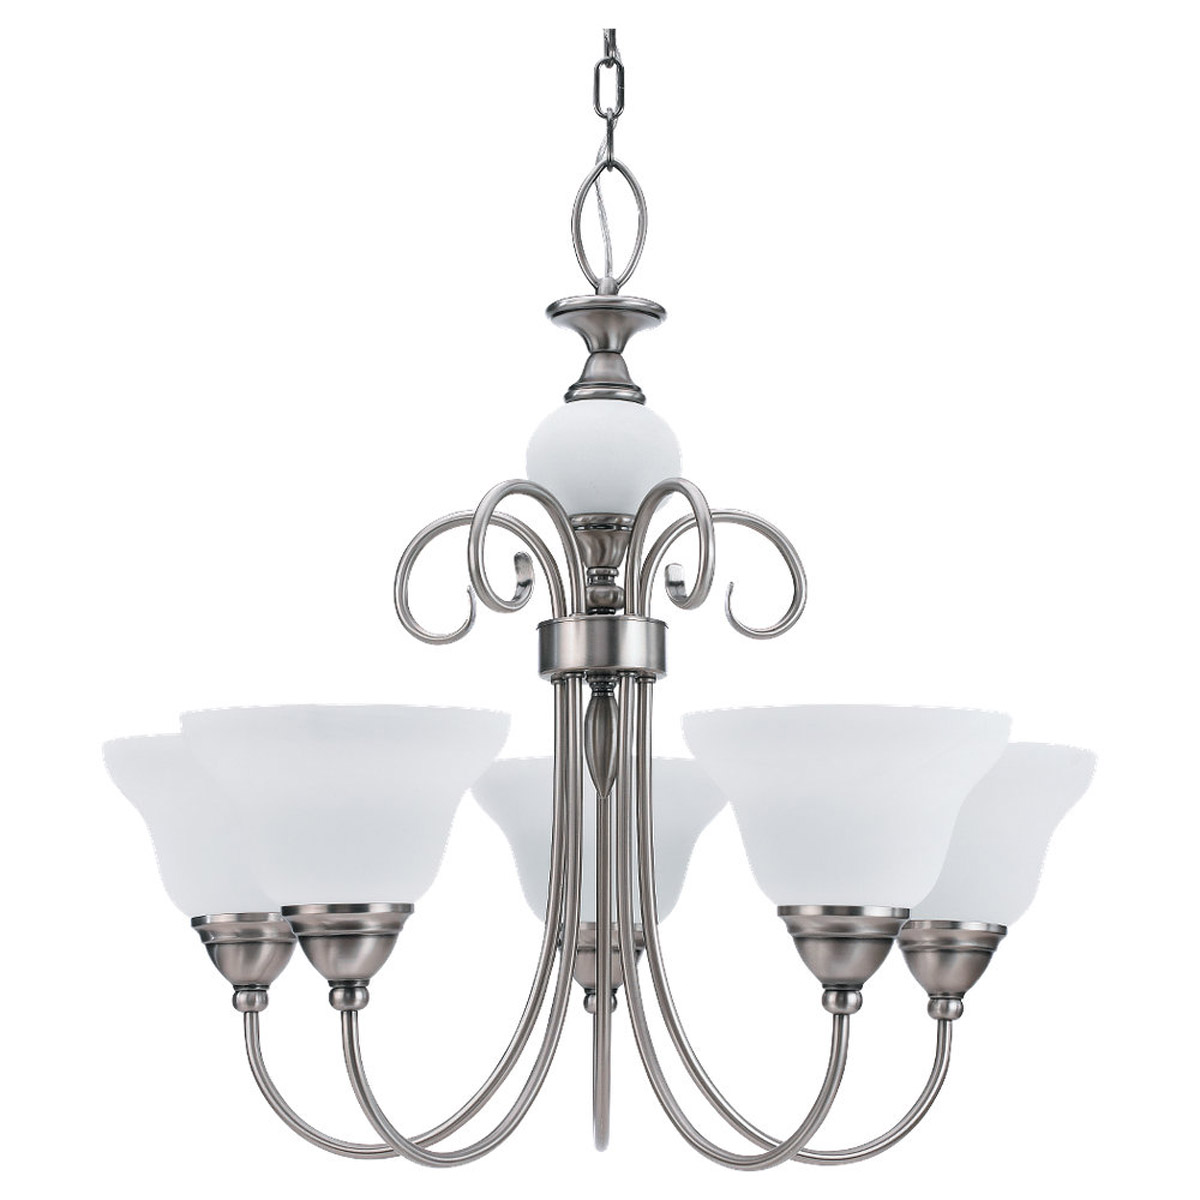 Sea Gull Lighting Montclaire 5 Light Chandelier in Antique Brushed Nickel 31106-965 photo